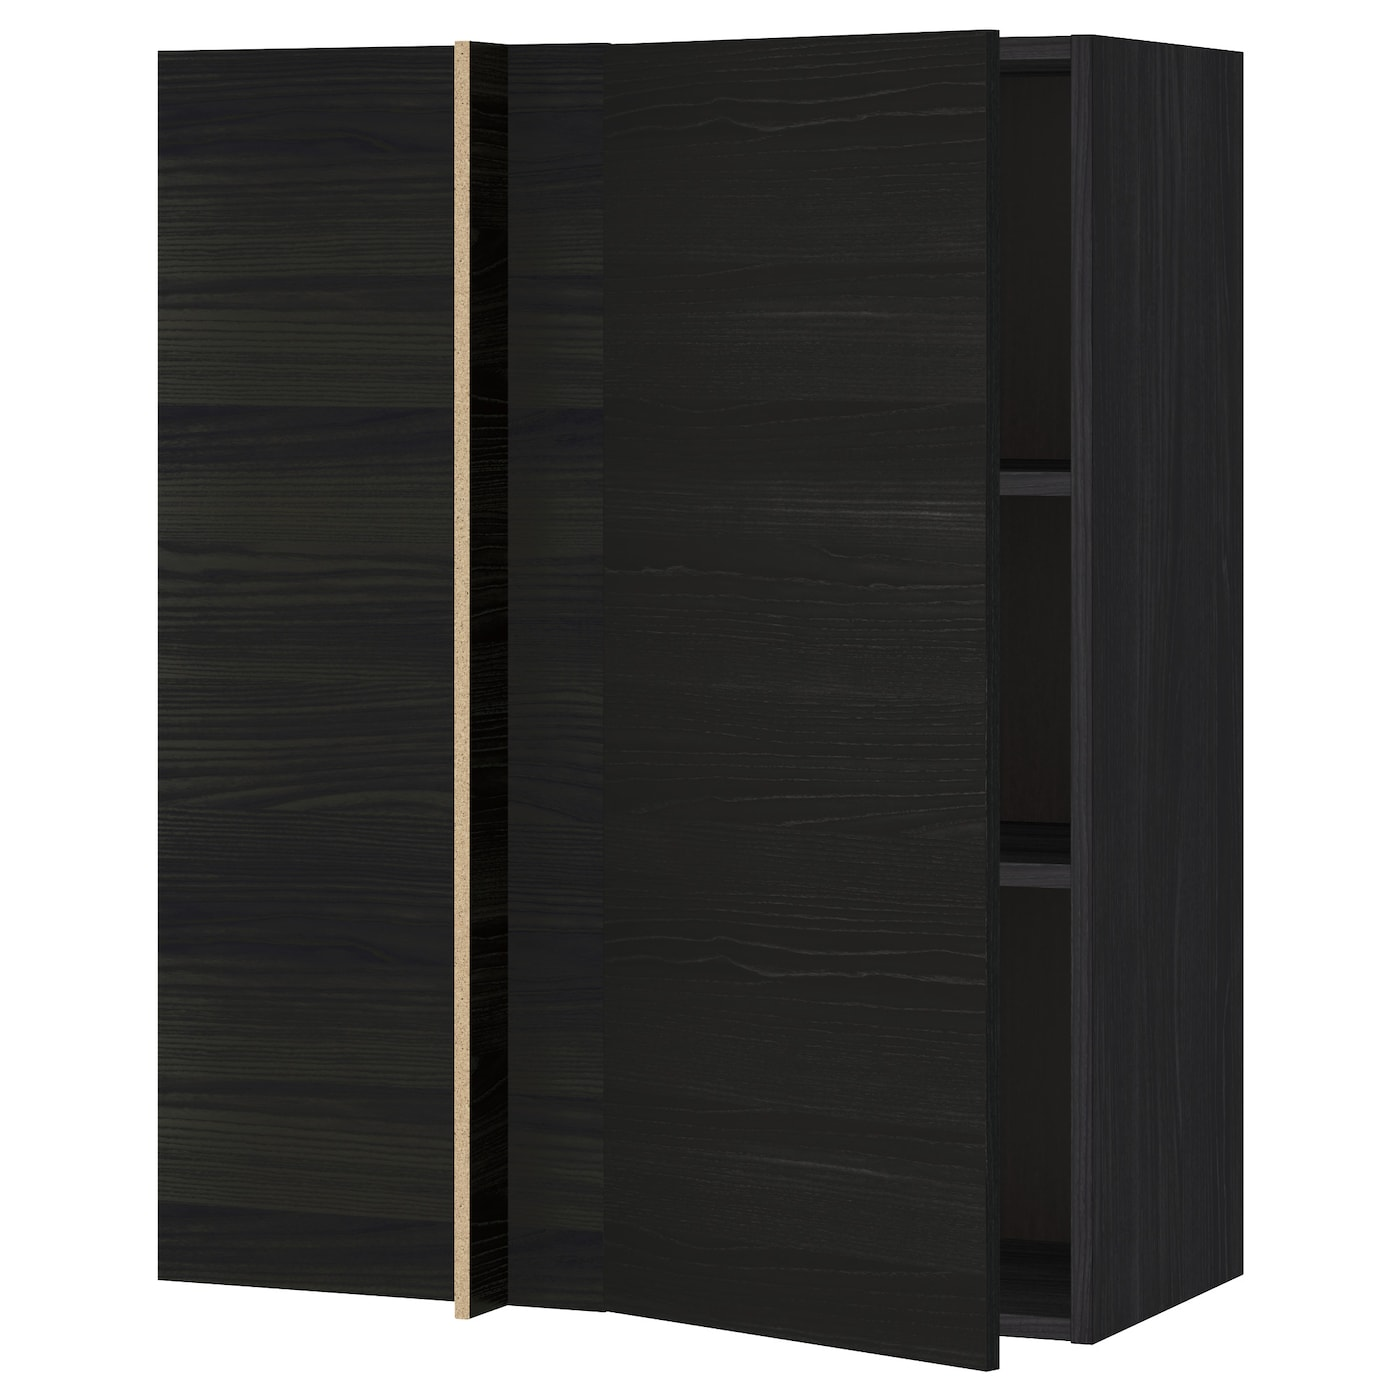 Metod Wall Cabinet With Shelves: METOD Corner Wall Cabinet With Shelves Black/tingsryd